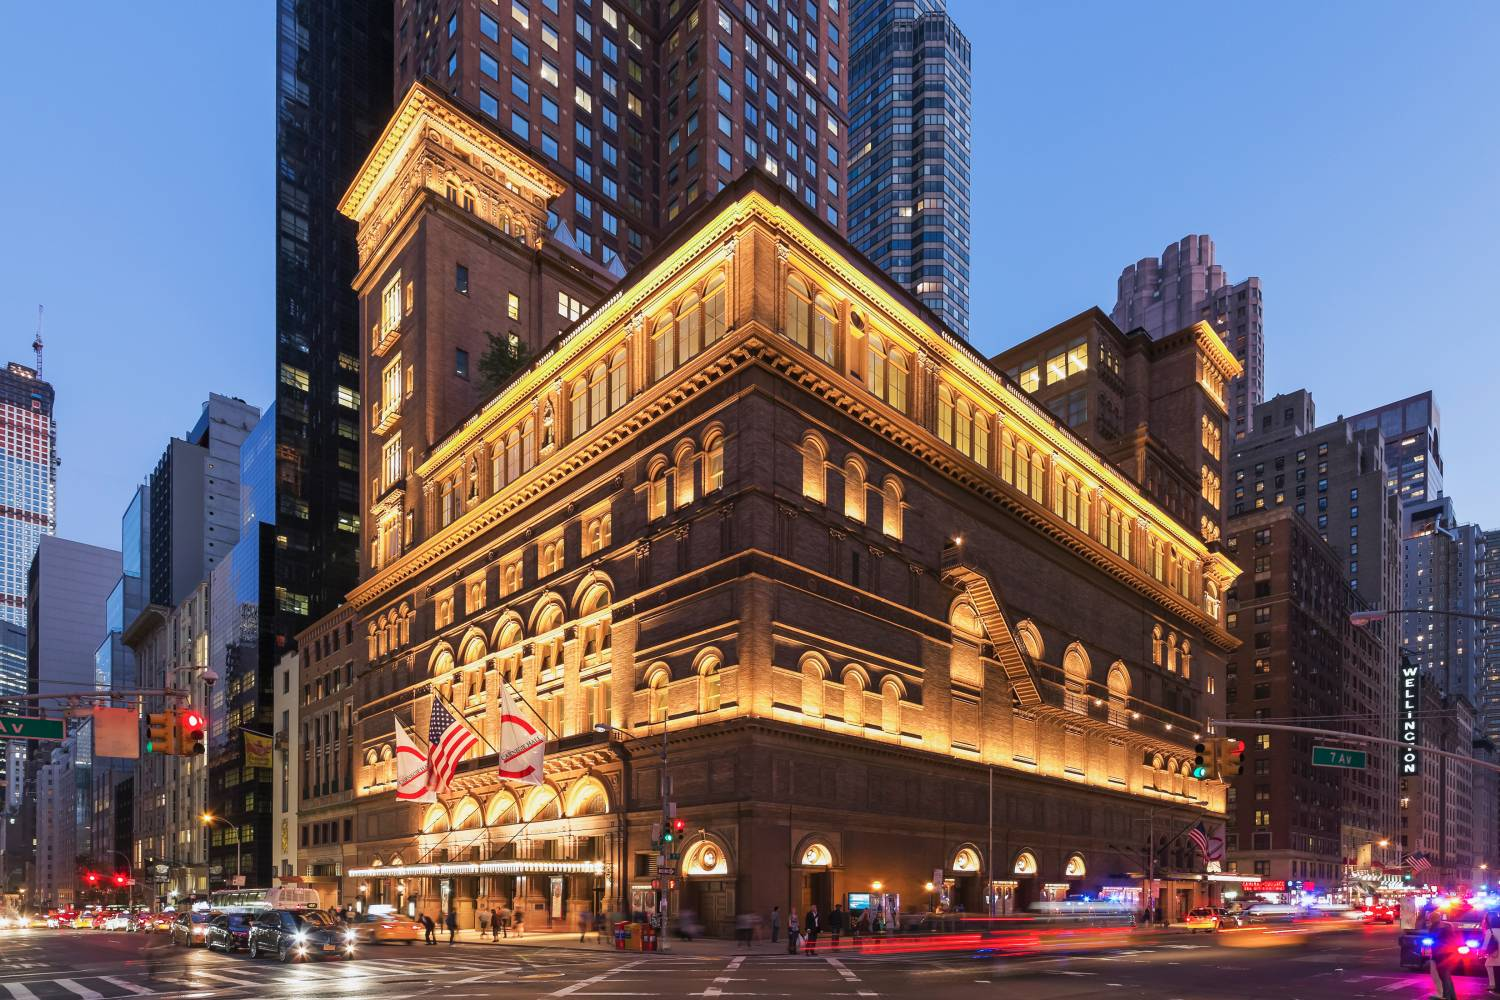 Karwendel Artists @ Carnegie Hall! - Our 2017 Karwendel Artists will perform at the internationally renowned CARNEGIE HALL in New York!